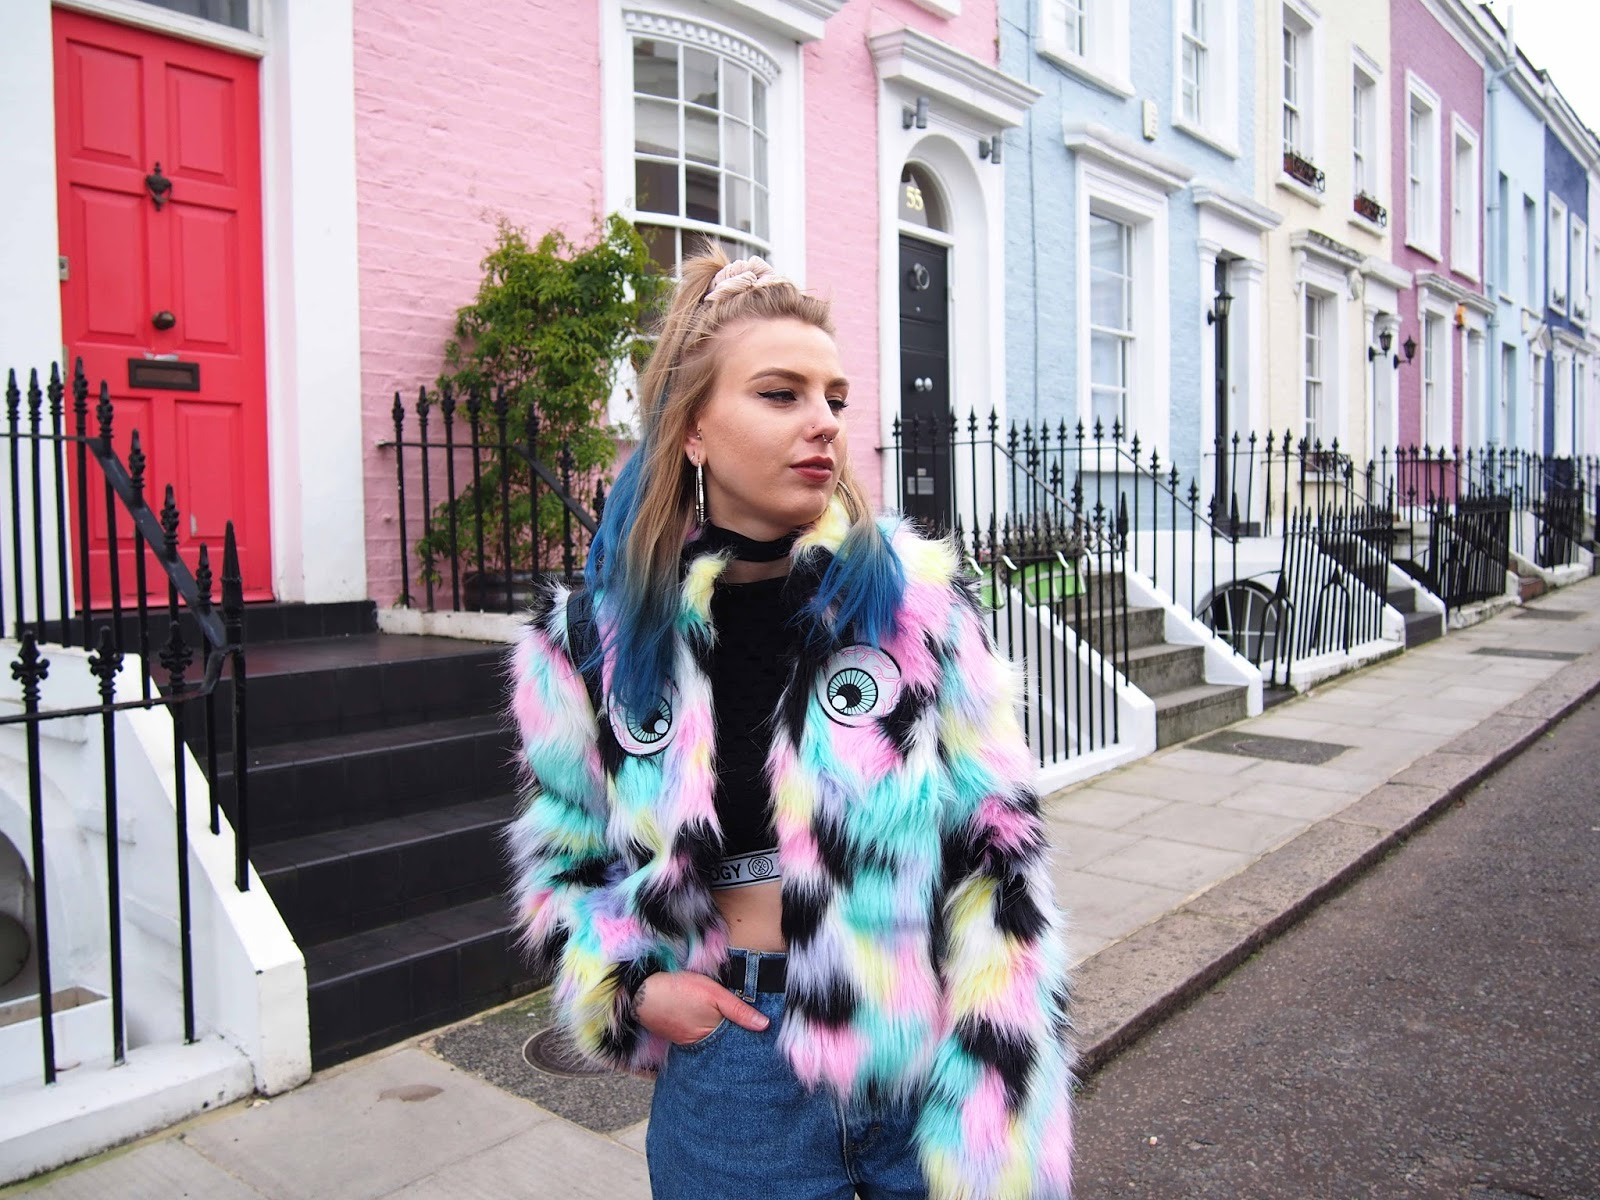 iron fist i see you coat, faux fur pastel jacket, vintage mom jeans, fishnets under jeans, mesh netted top, choker, nike cortez, pink faux fur backpack, 90s grunge style 1